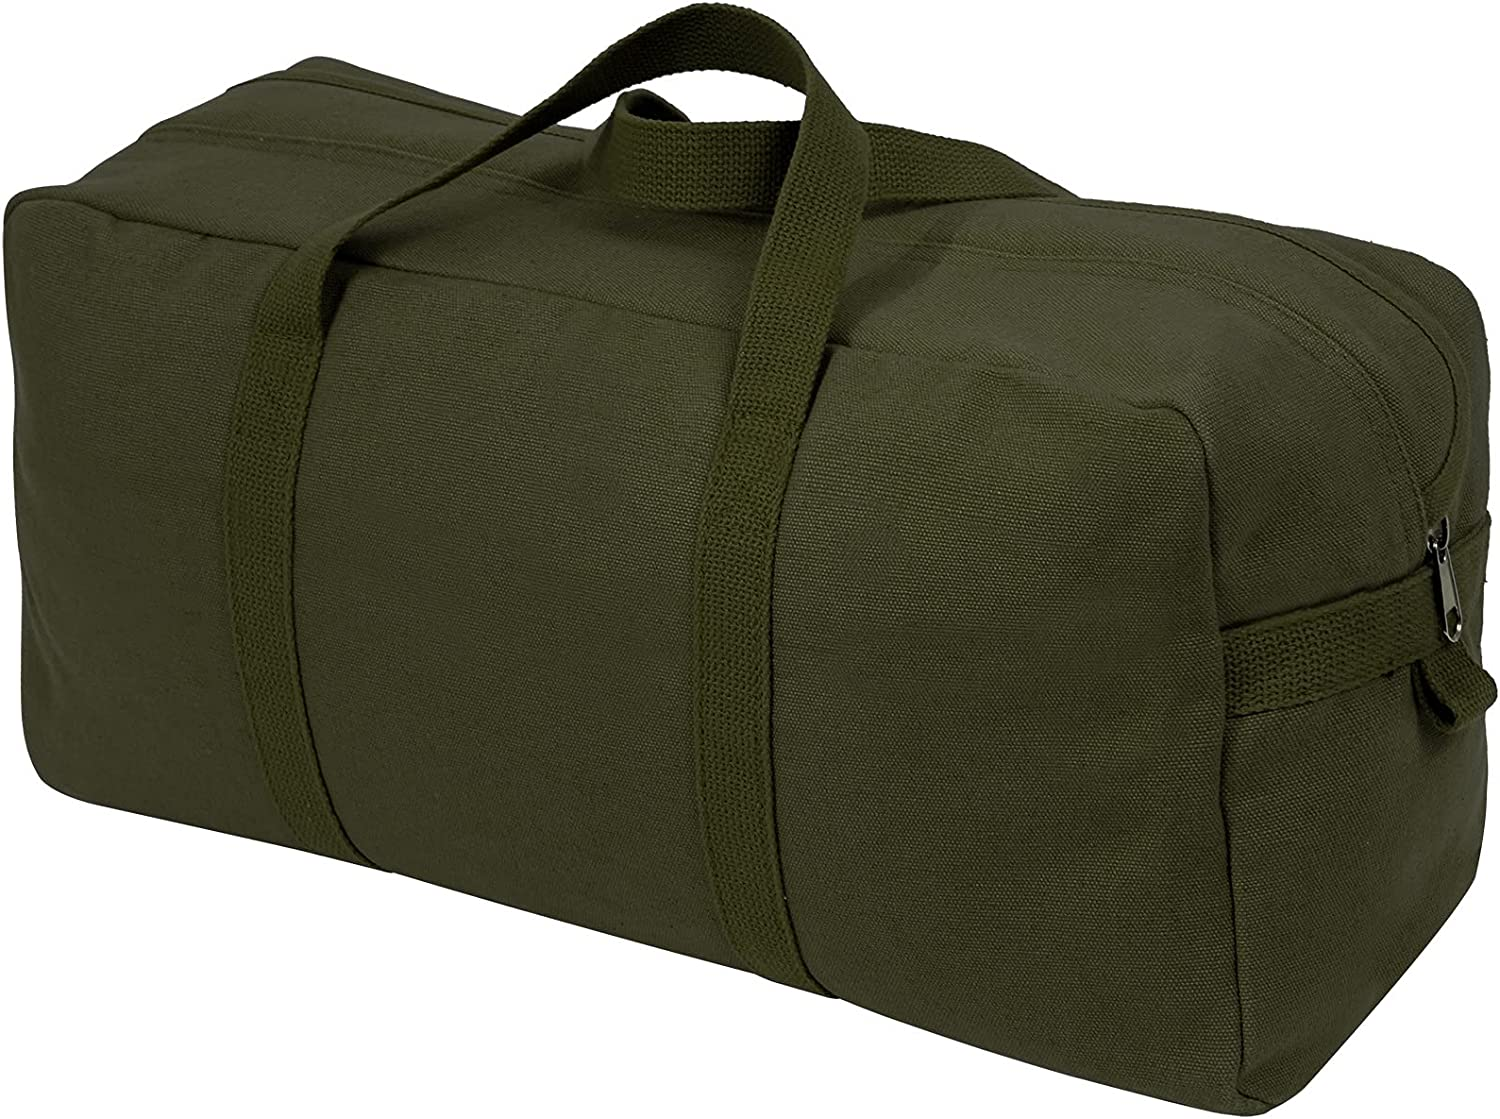 Rothco Canvas Tanker Style Tool It Some reservation is very popular Drab Olive Bag -